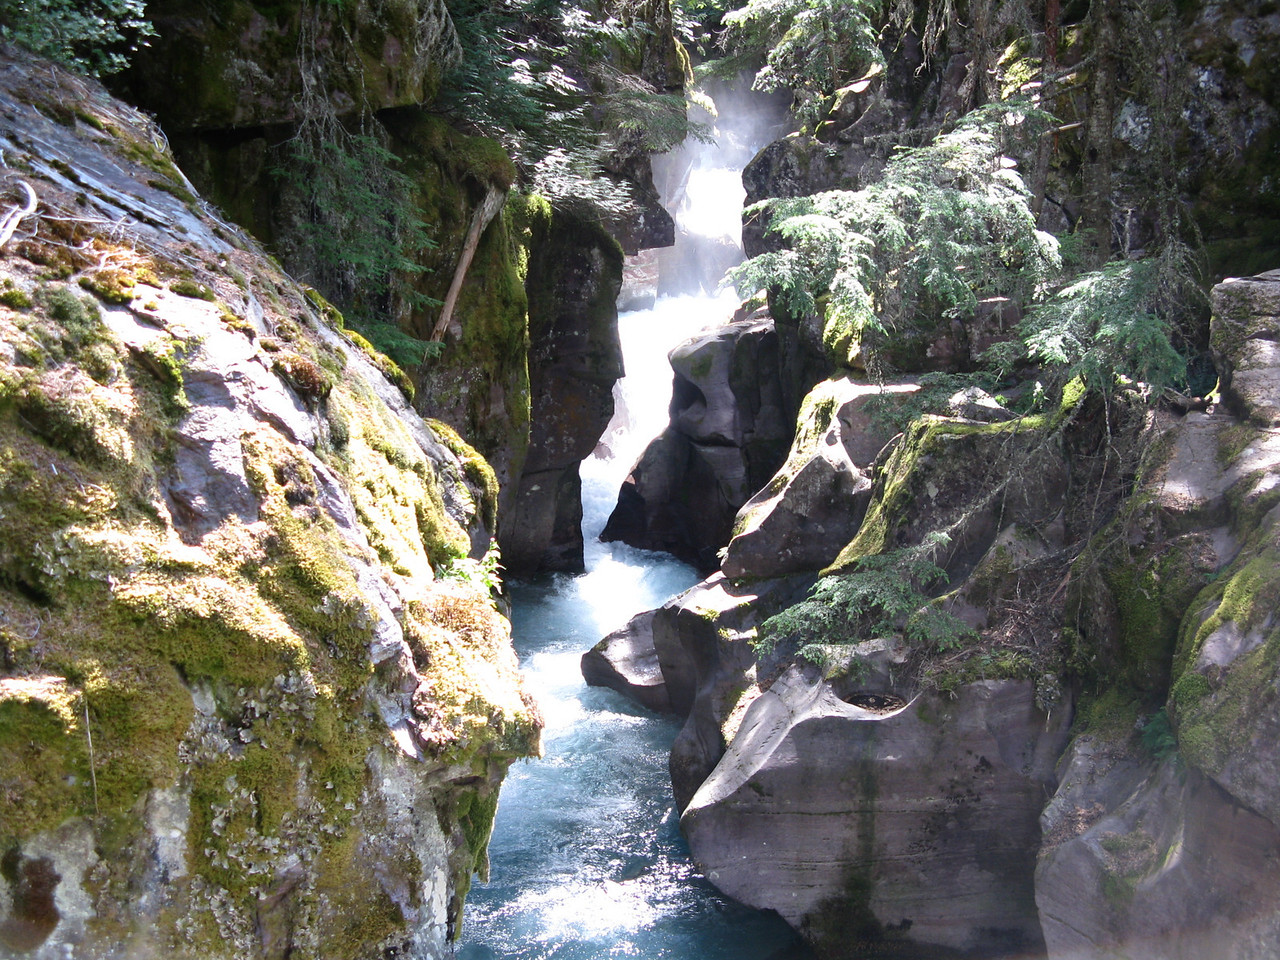 """At Avalanche Creek, we walked the """"Trail of the Cedars"""".  The 0.7 mile nature trail looped through a grove of old growth Red Cedars.  This is Avalanche Gorge, where the creek cascades down through a narrow channel in the rocks.  At about mile 16, Avalanche Creek has picnic areas and campgrounds as well."""